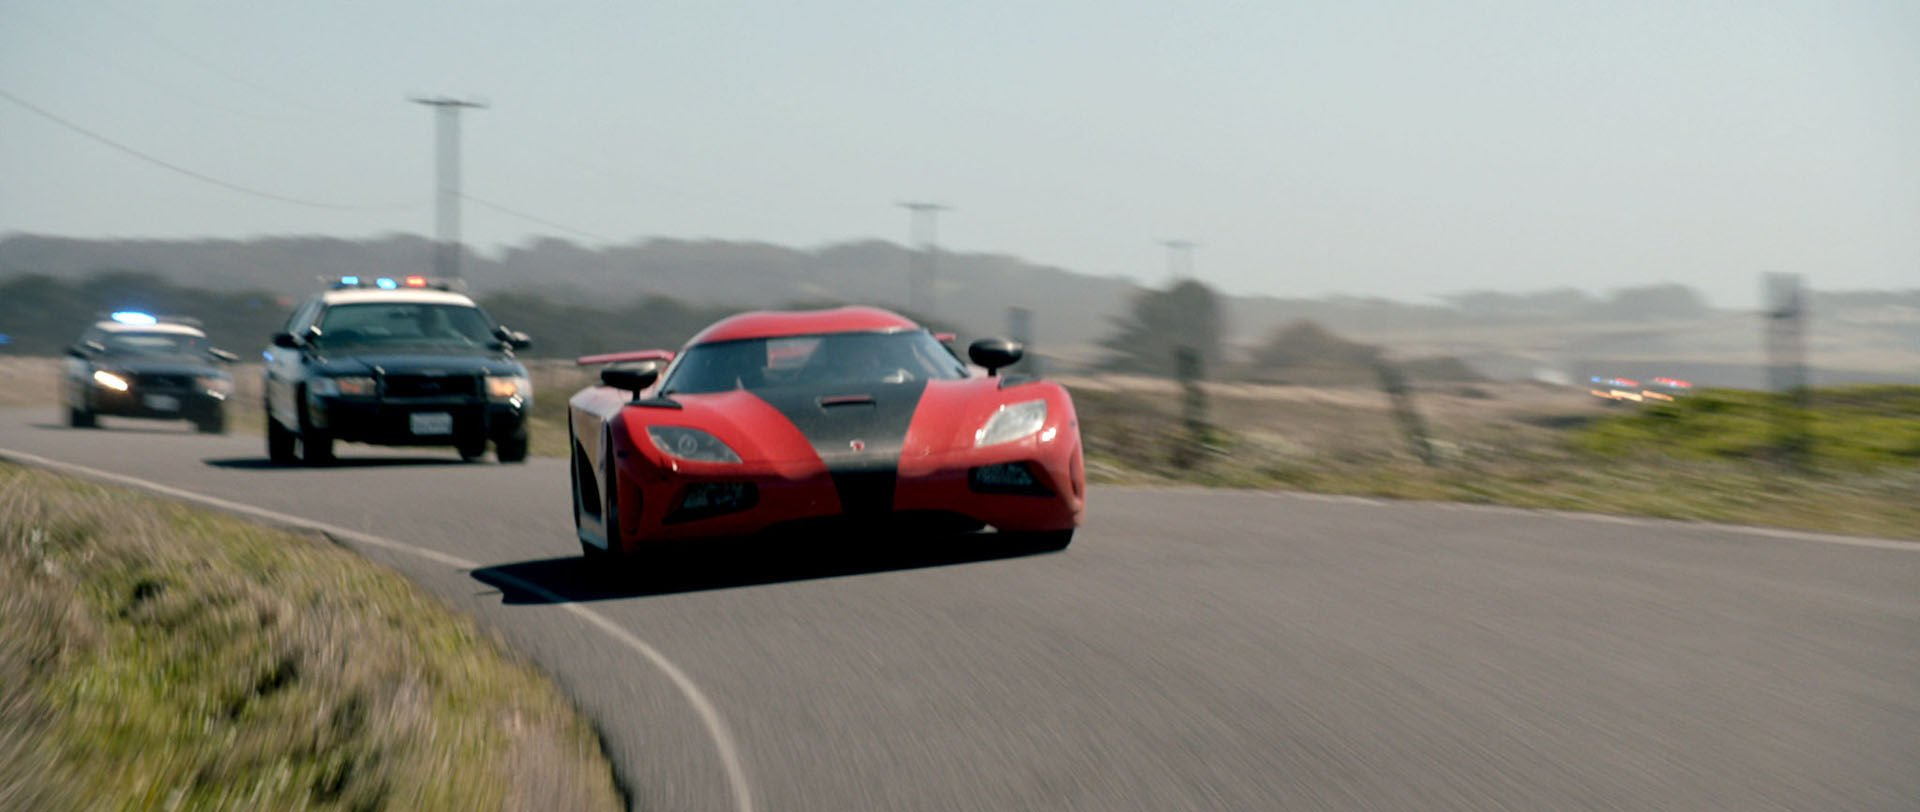 need for speed race - photo #21